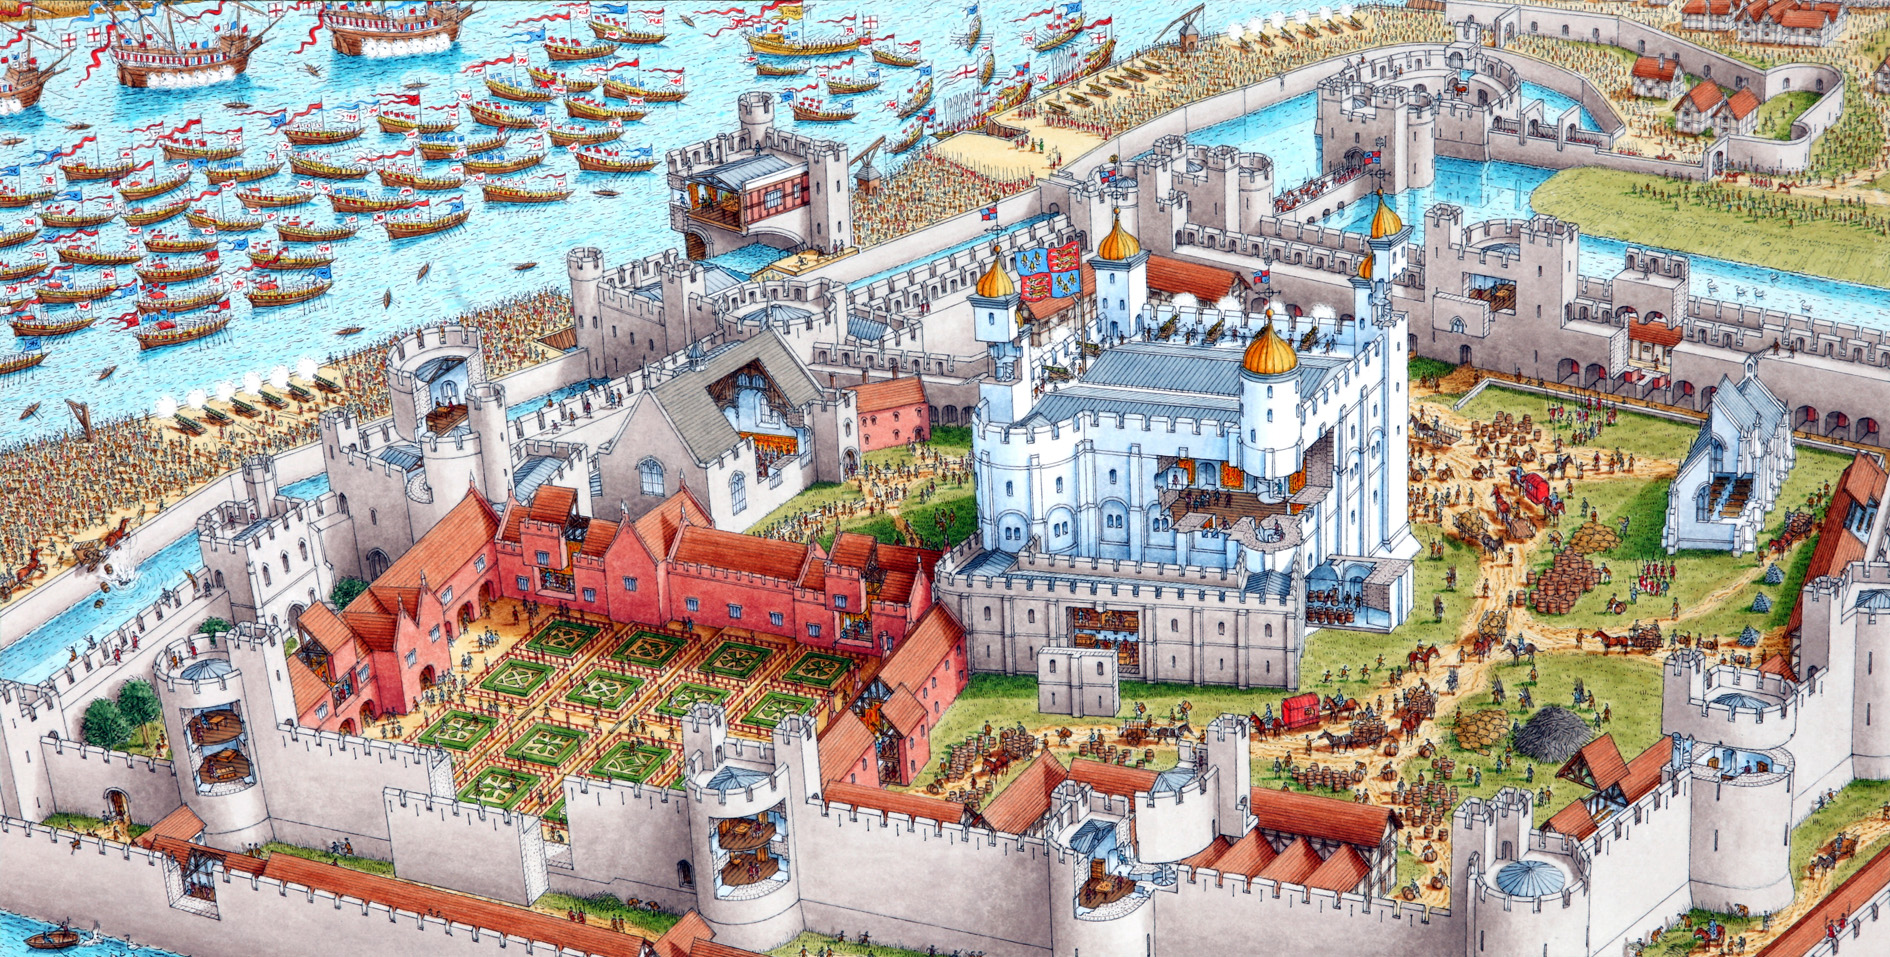 Hamfort moreover Galleries cutaway panoramas TowerOfLondon also Medieval Castles Floor Plans Layout as well Bradshaws Hand Book To London The West Day 5 District Iii St Jamess Palace And Green Park No 21 moreover Three Merovian Houses. on gatehouse floor plans